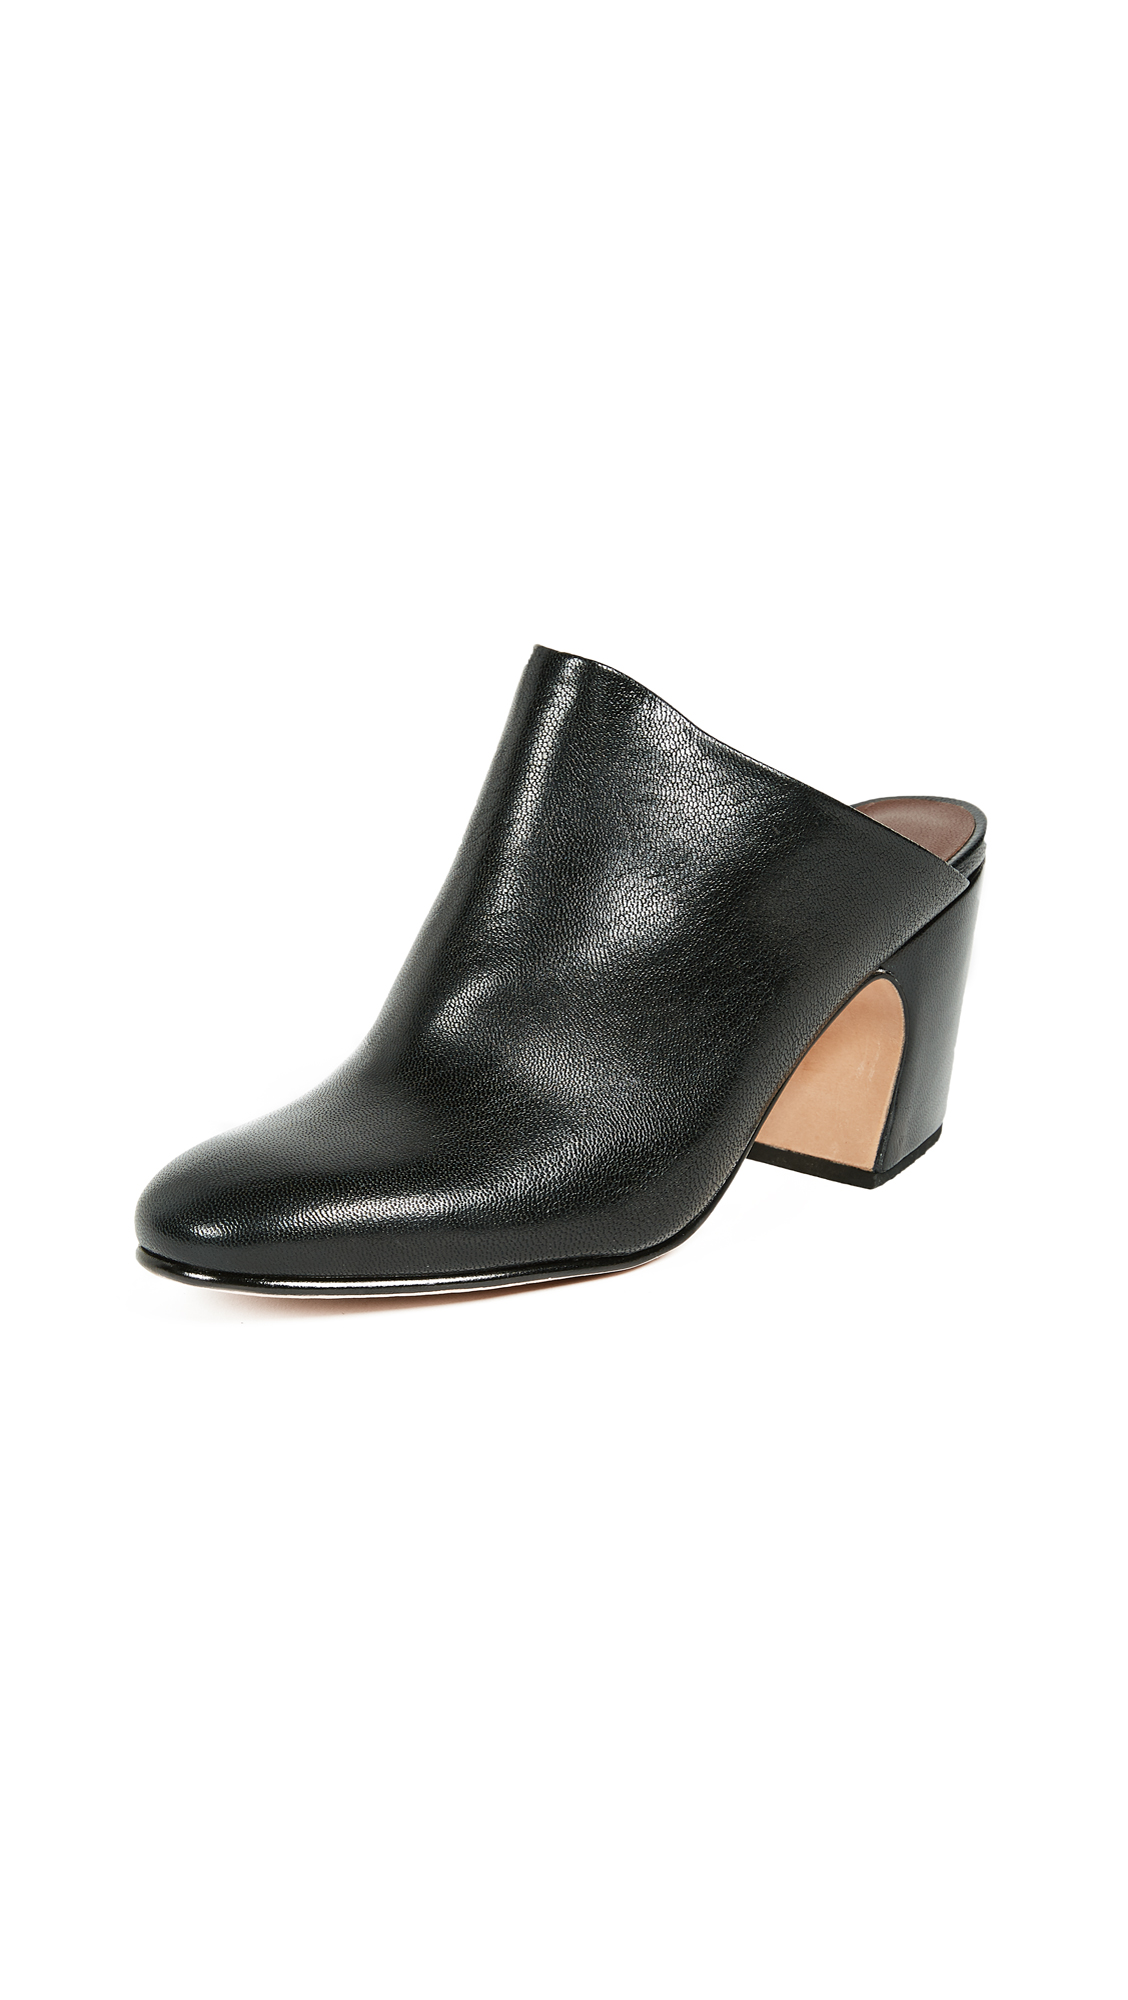 Rachel Comey Hicks Mules - Black